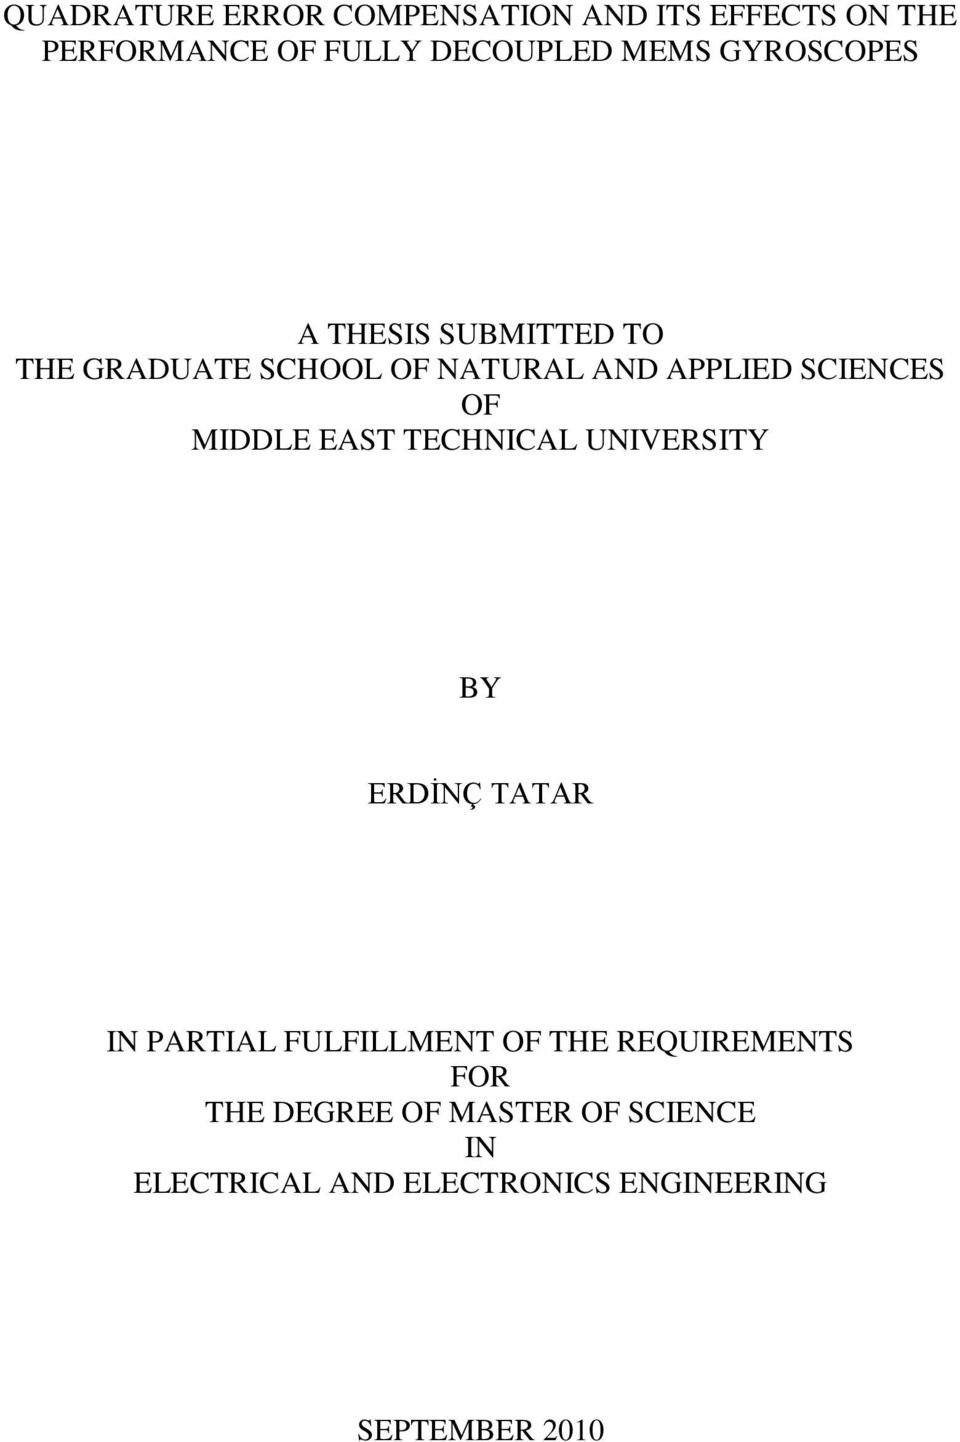 MIDDLE EAST TECHNICAL UNIVERSITY BY ERDİNÇ TATAR IN PARTIAL FULFILLMENT OF THE